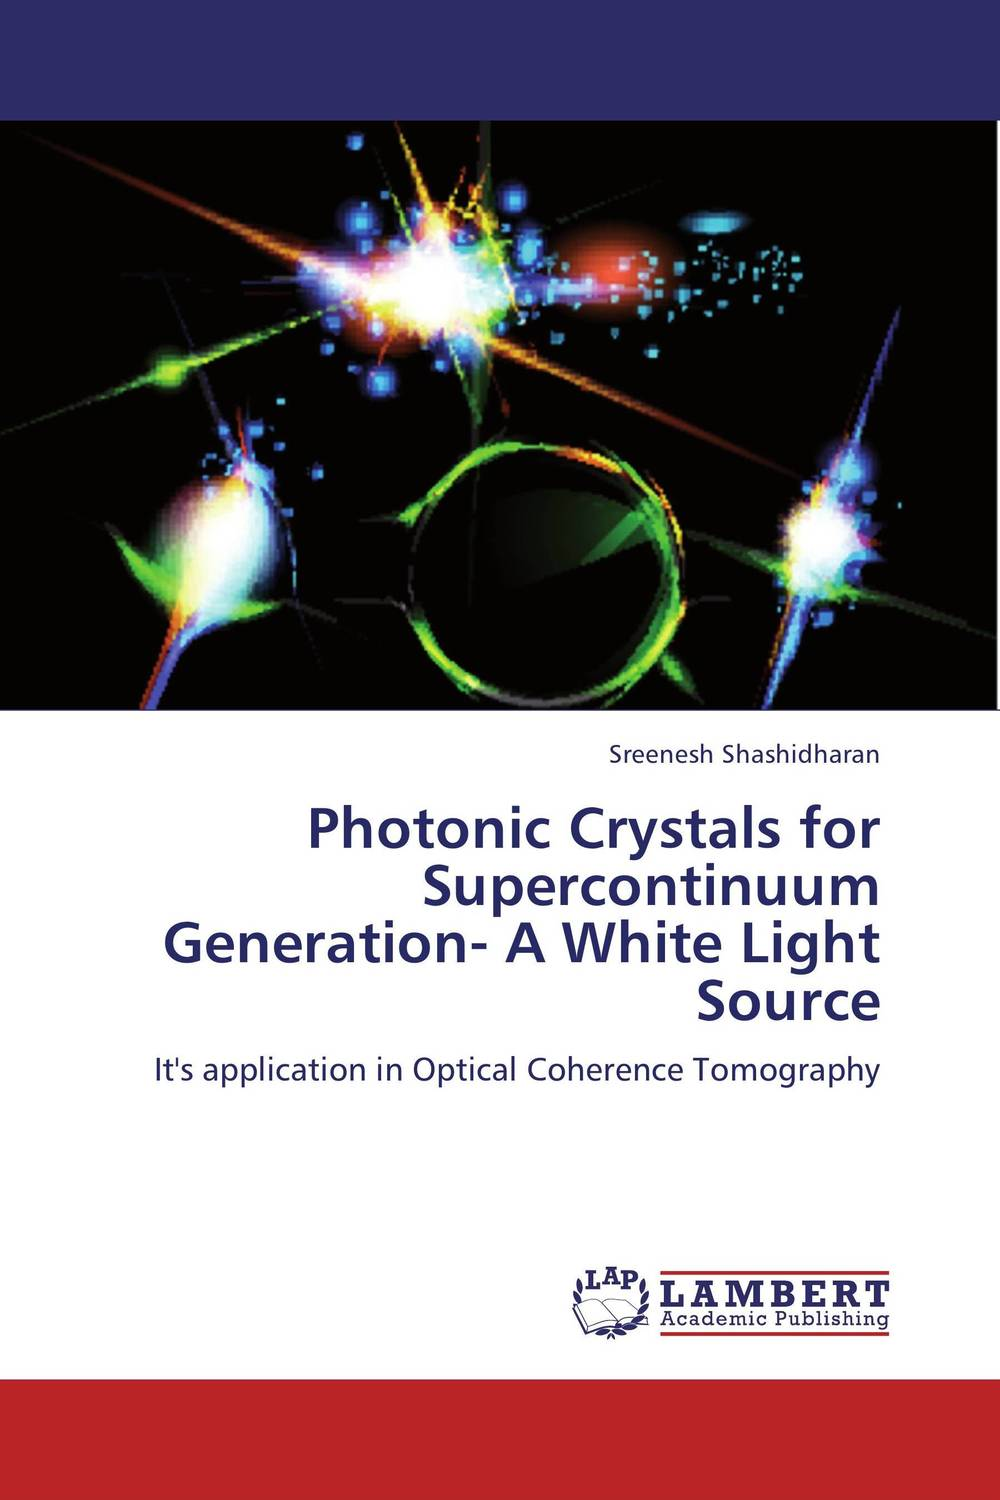 Photonic Crystals for Supercontinuum Generation- A White Light Source mahmoud m ragab nazmi a mohammed and moustafa h aly wavelength conversion using nonlinear effects in optical fibers